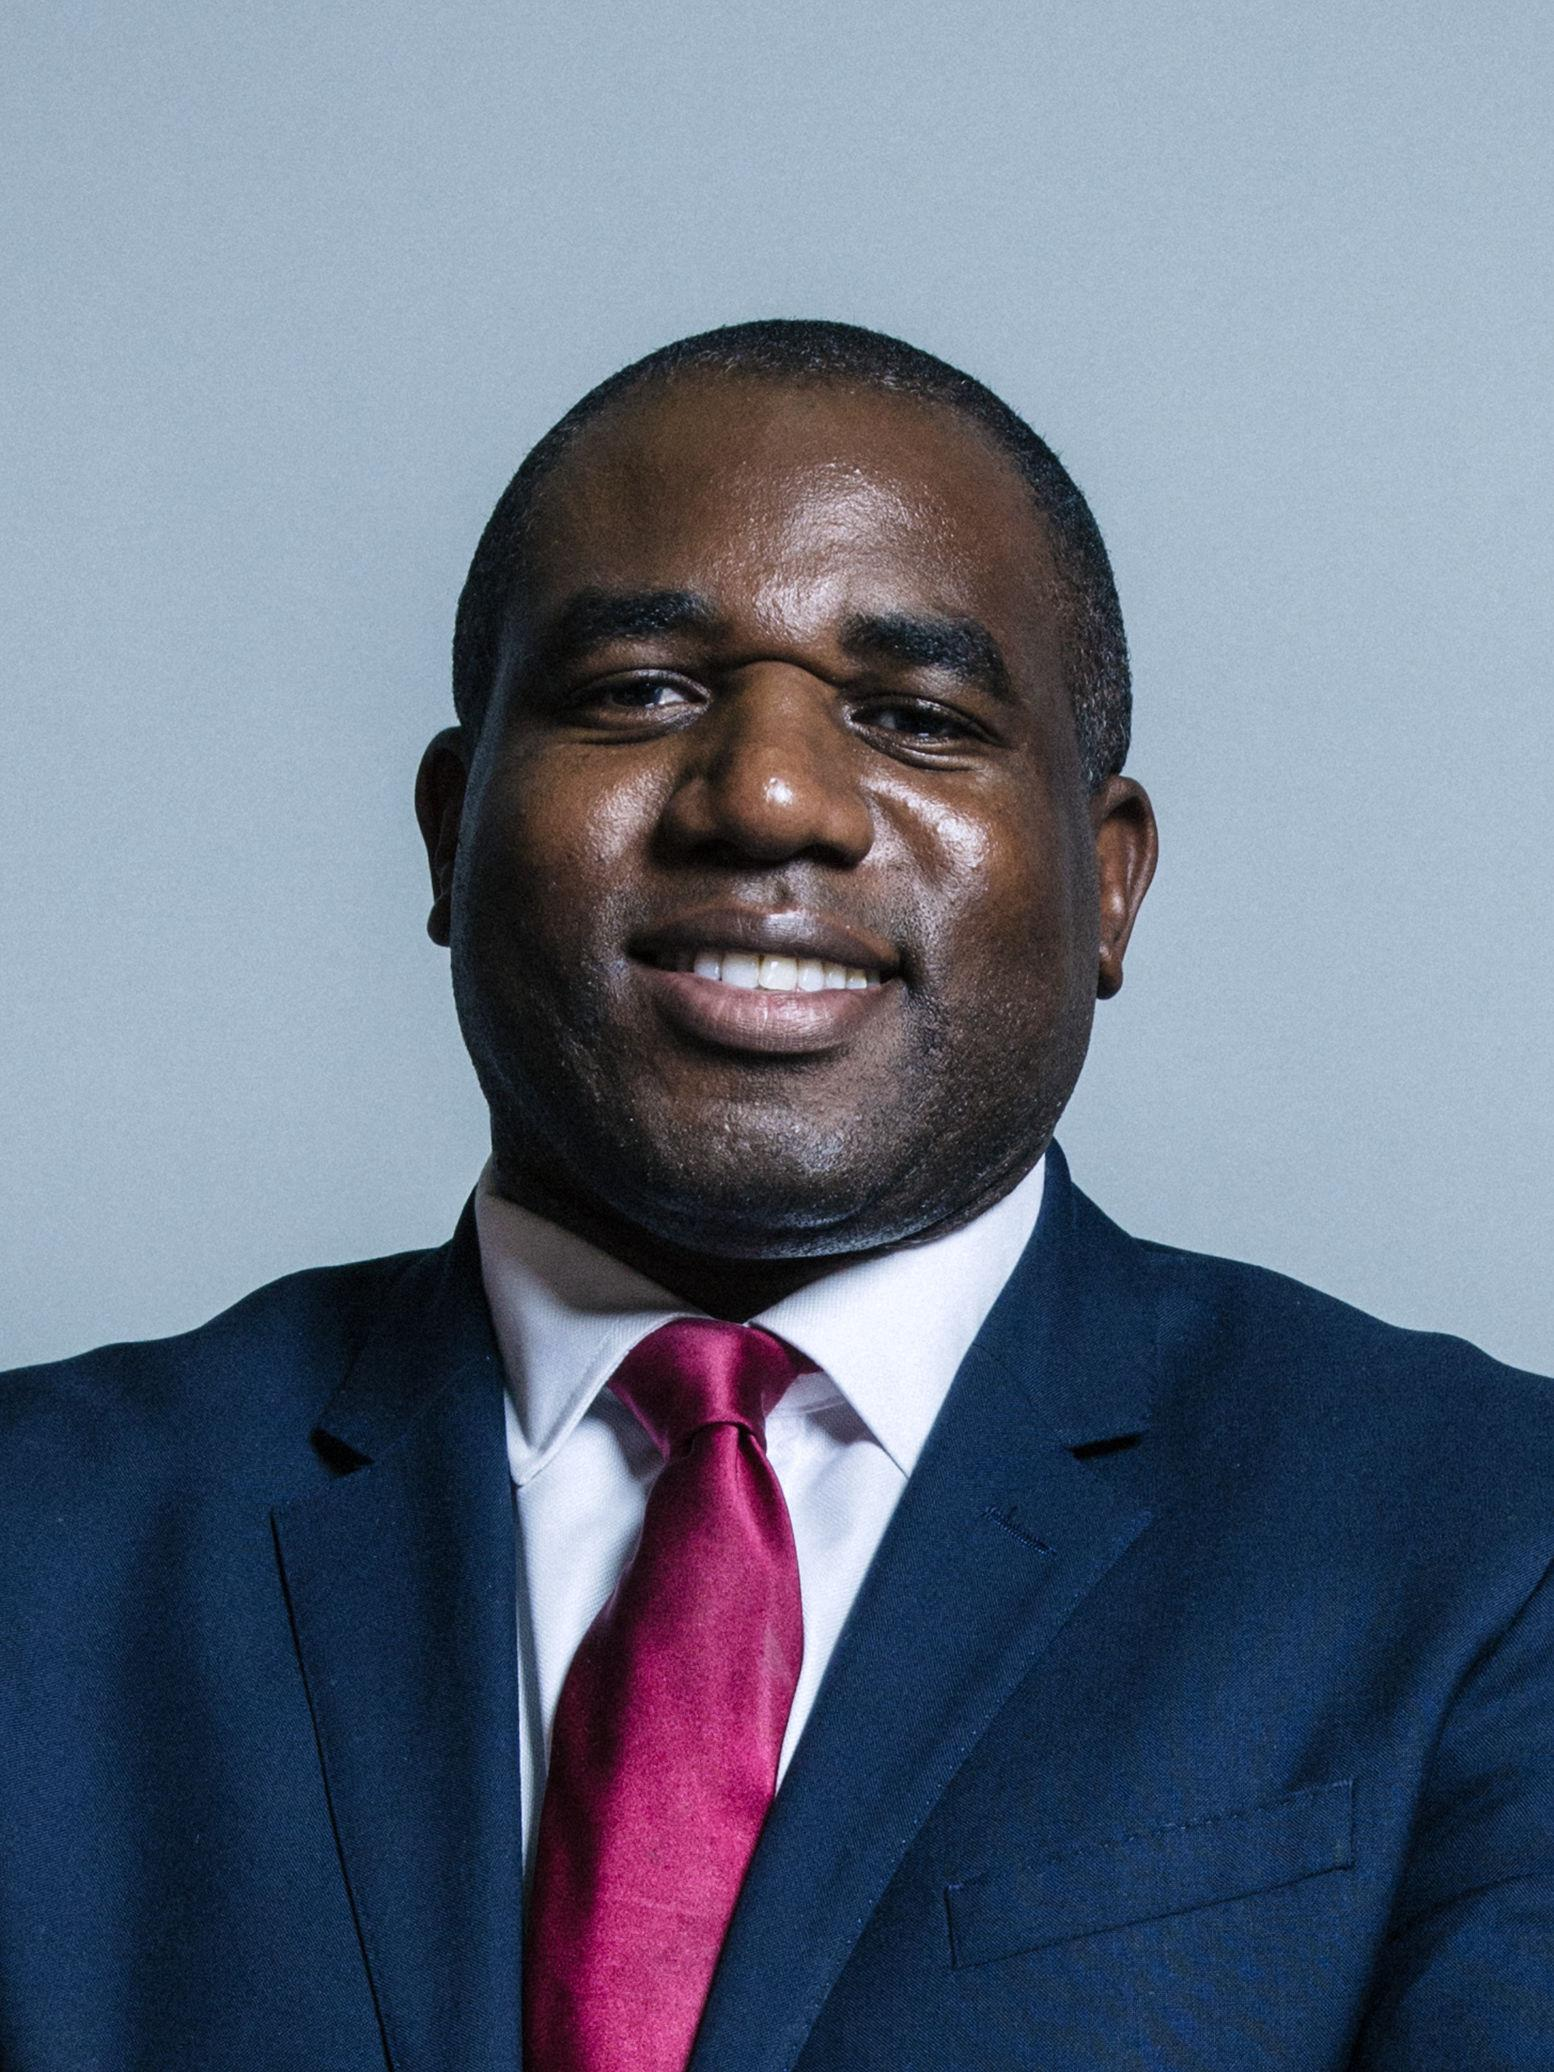 Lammy condemned the universities of Oxford and Cambridge